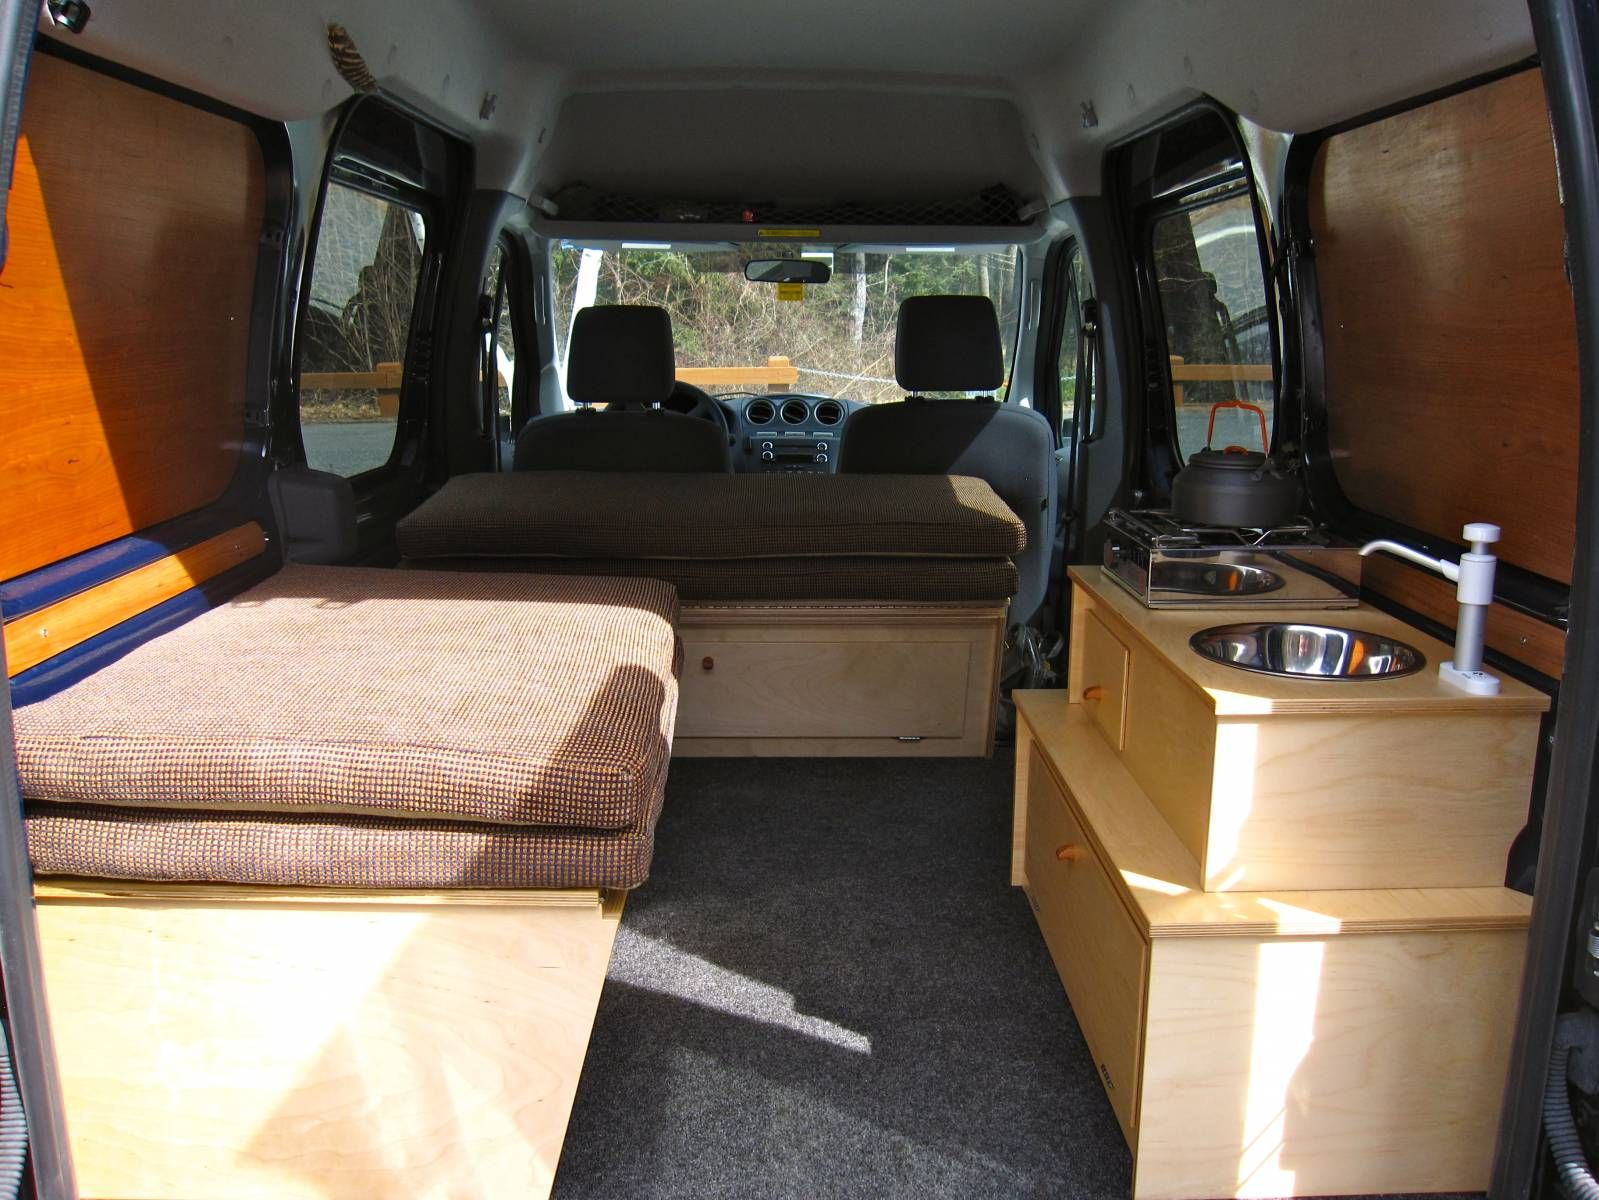 Transit Connect Camper Transit Connect Camper Photo Gallery Ford Transit Connect Forum Ford Transit Camper Transit Camper Ford Transit